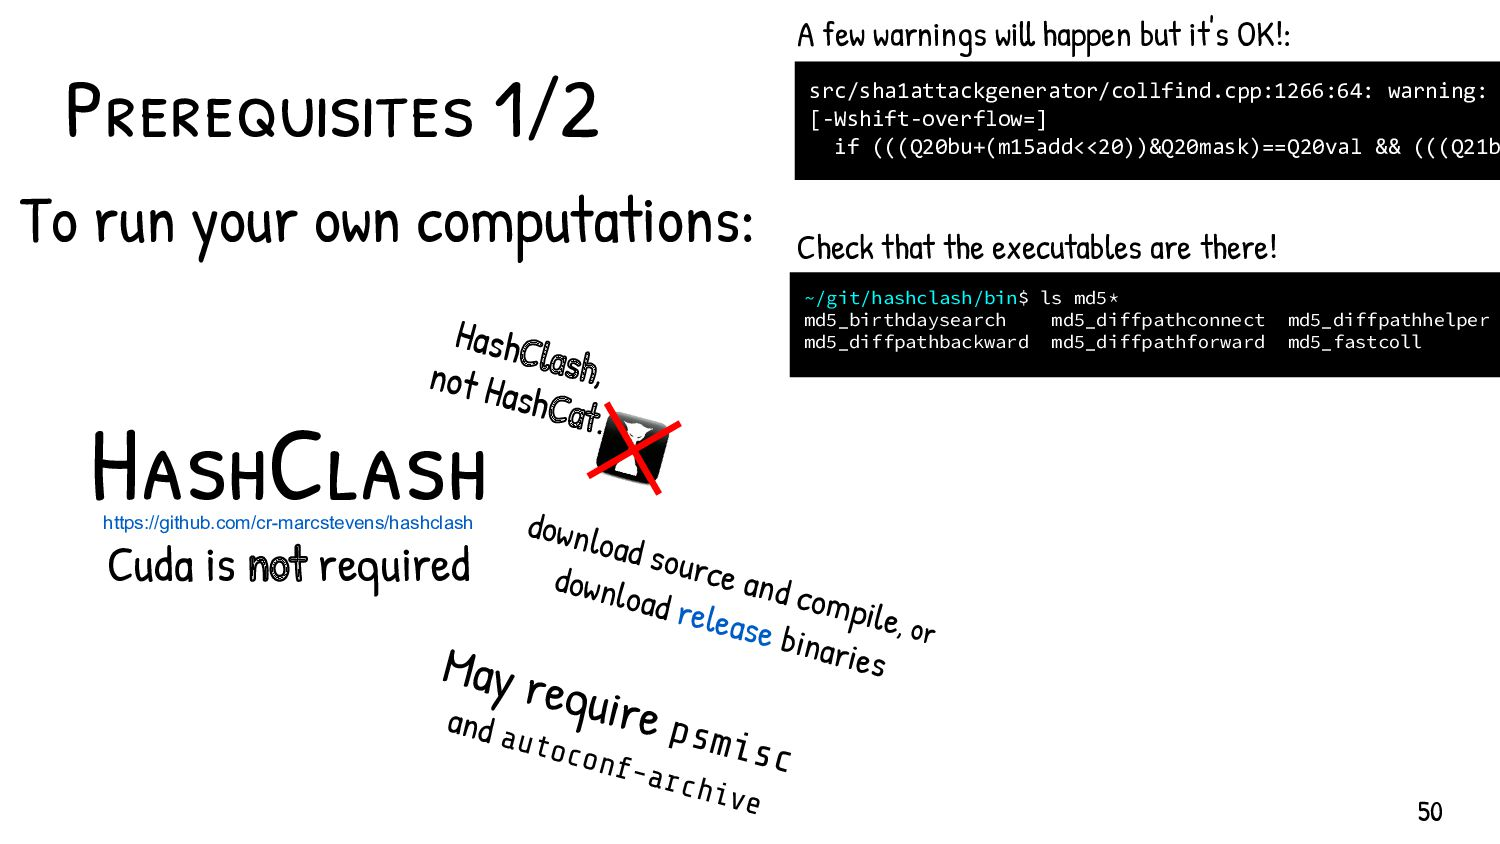 Can't compile? Computation too slow? Compiling ...